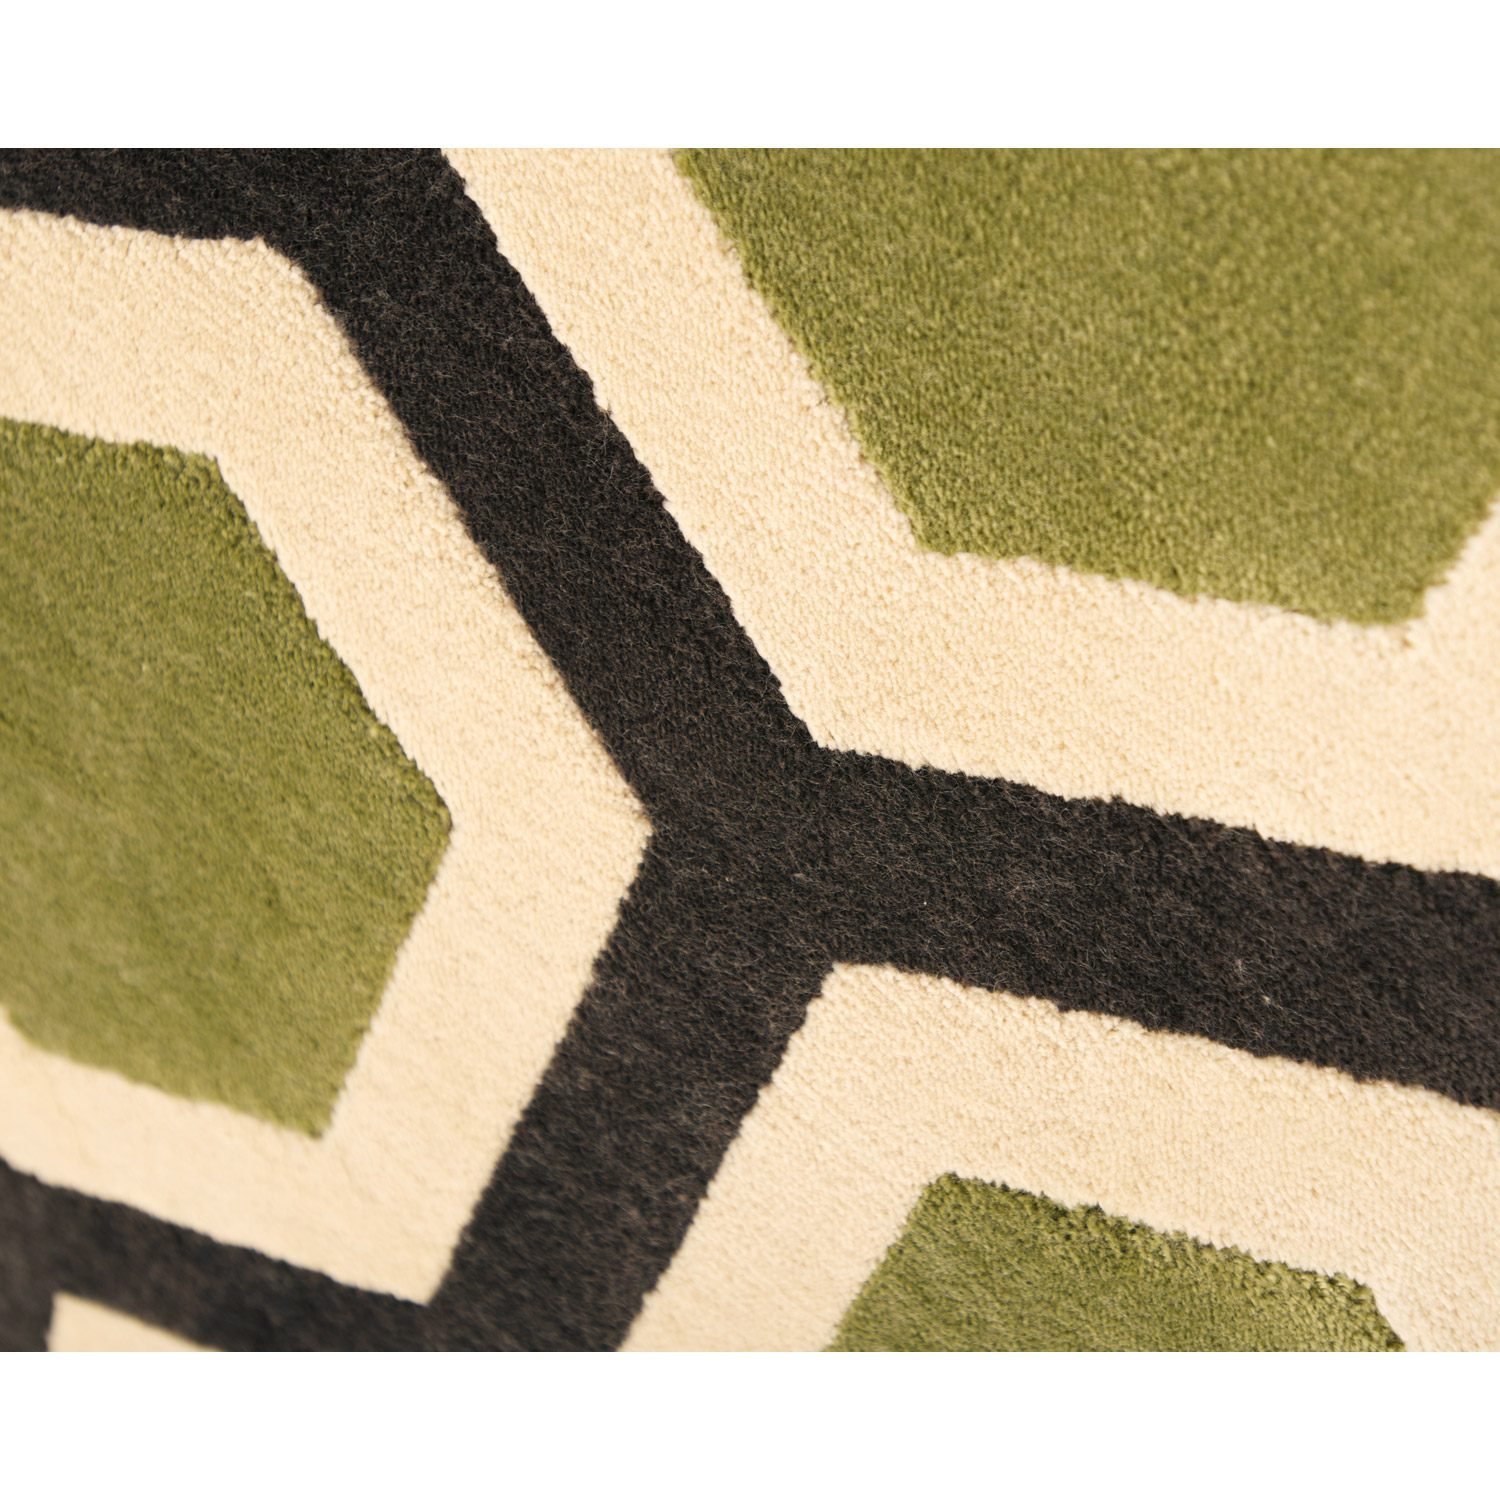 Sonoma Honeycomb Rug - Apple Green - ABA-7048-5x8